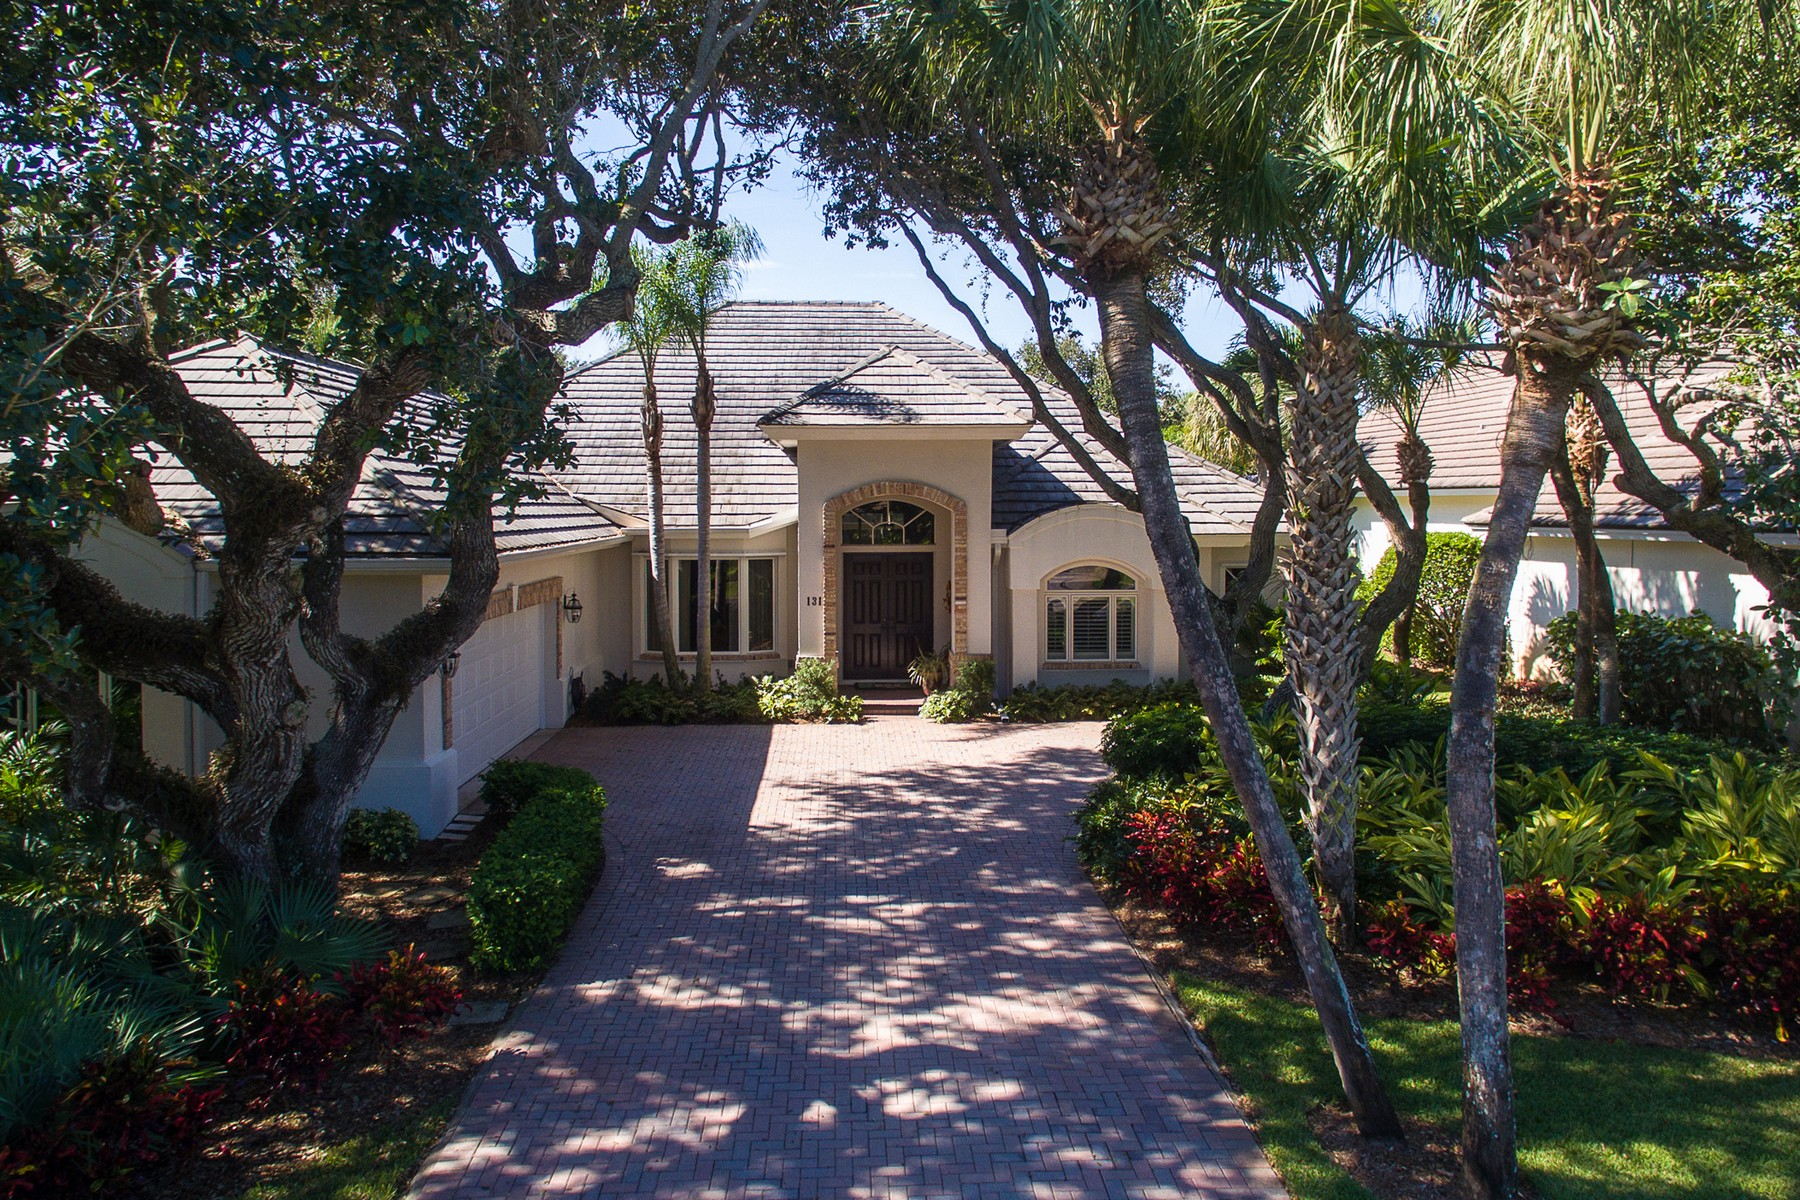 Single Family Home for Sale at Stunning Home in Ocean Pearl 131 N White Jewel Ct Vero Beach, Florida, 32963 United States